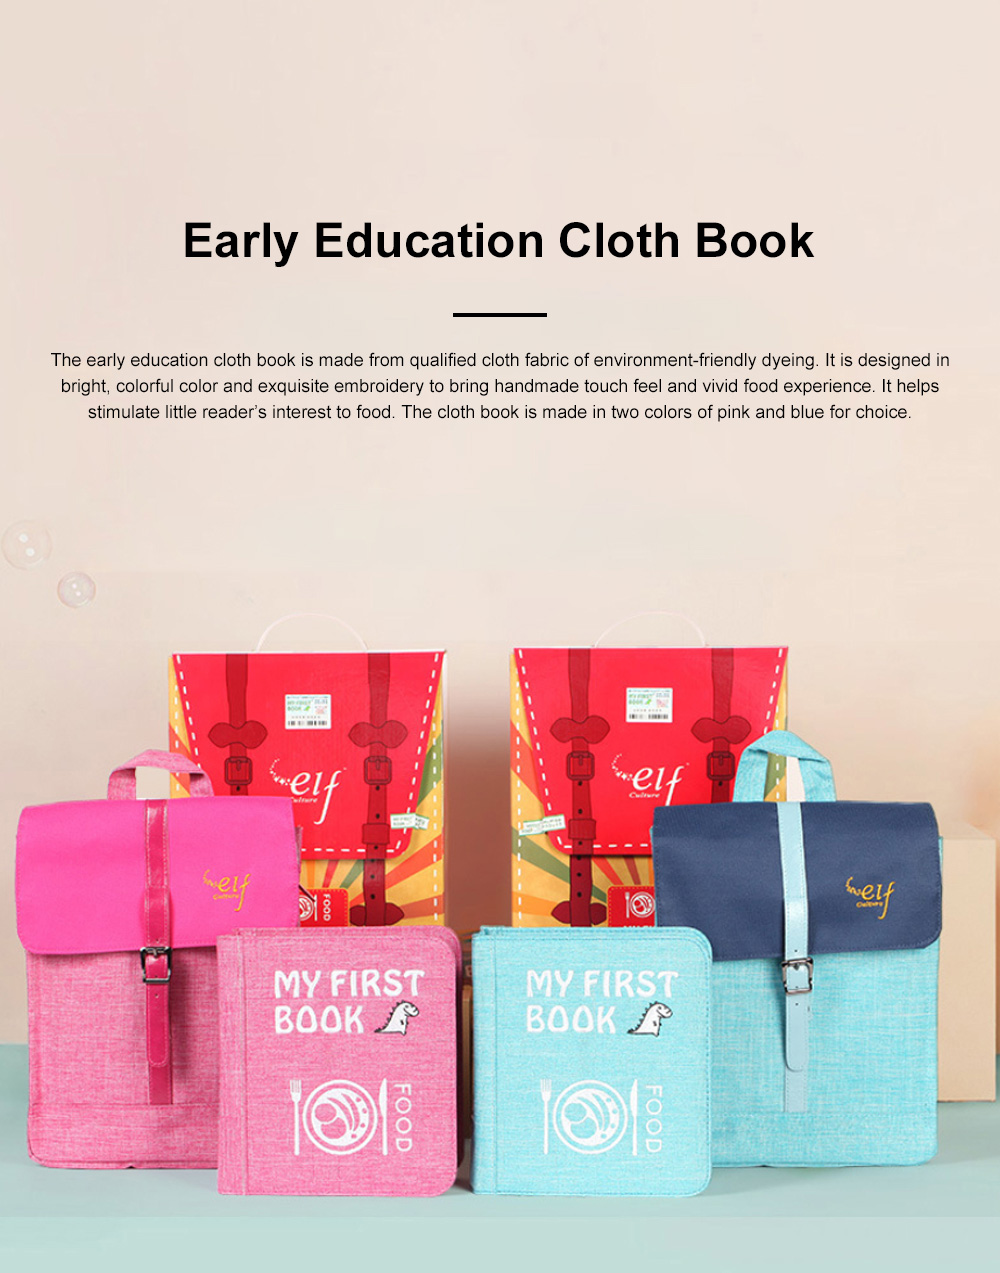 Elf-culture Food Cloth Book for Early Education Not Tearable Infant Toddler's Cloth Book Colorful Simple Cloth Book 0